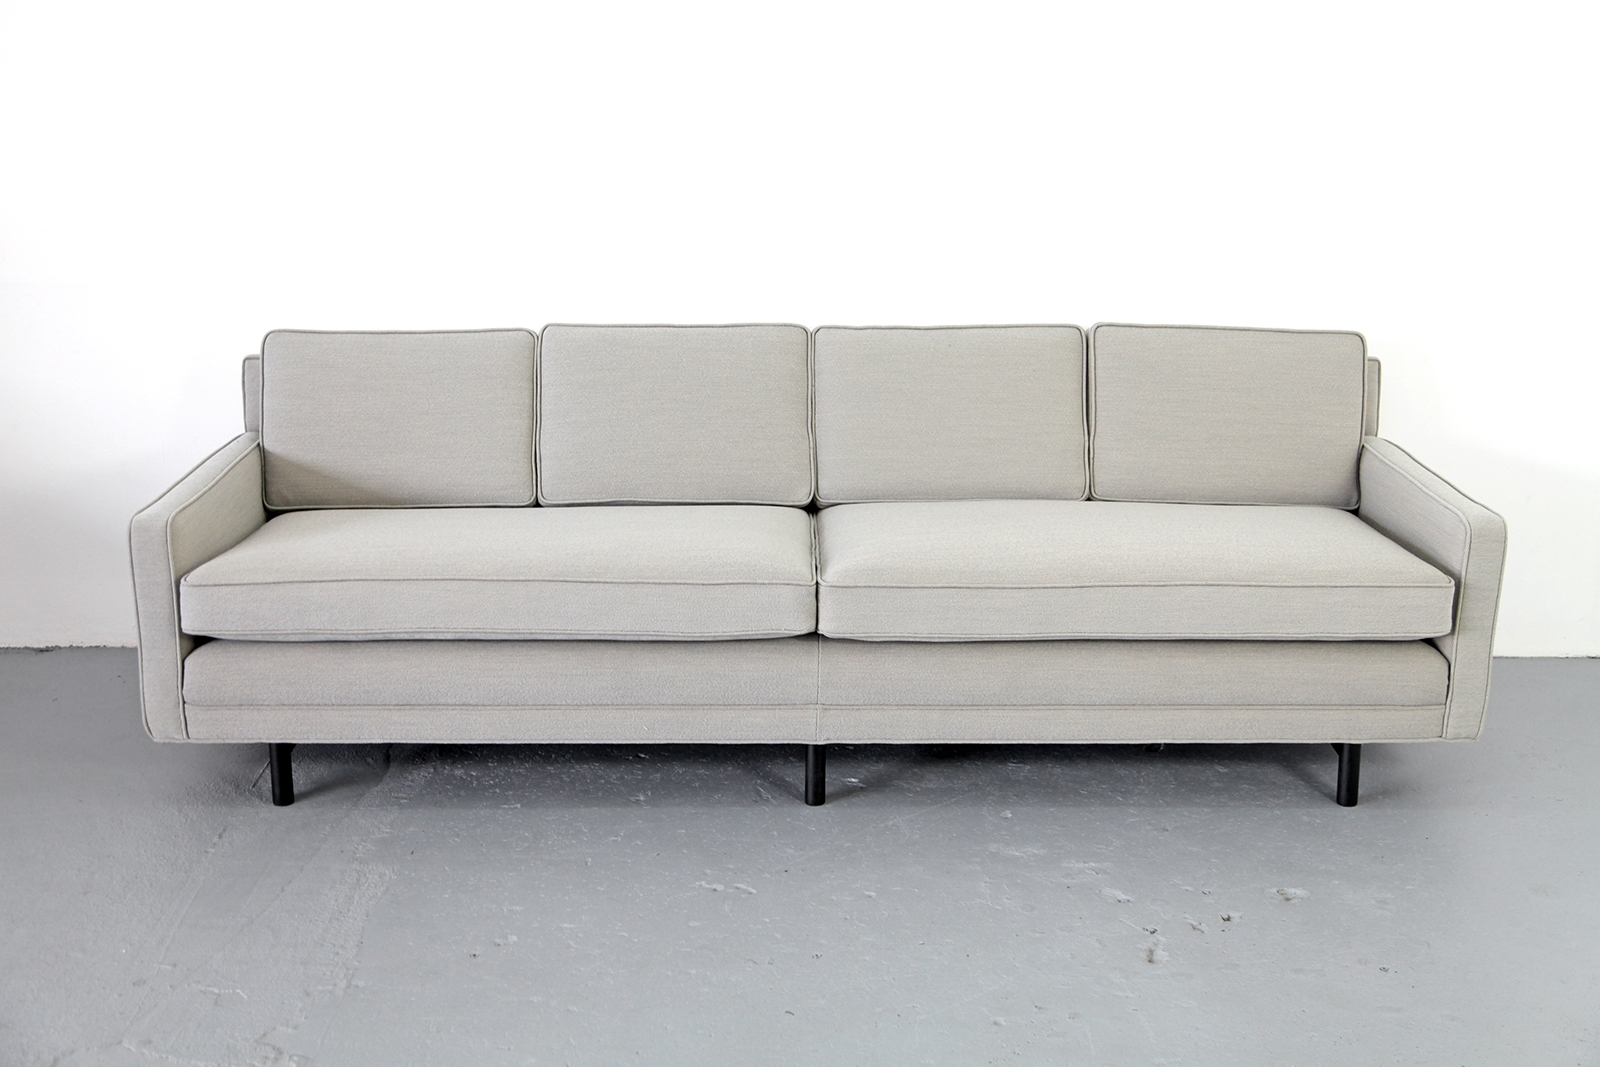 4 Seater Sofa Paul Mccobb For Directional For Sale At Pamono Regarding Four Seater Sofas (Image 3 of 15)